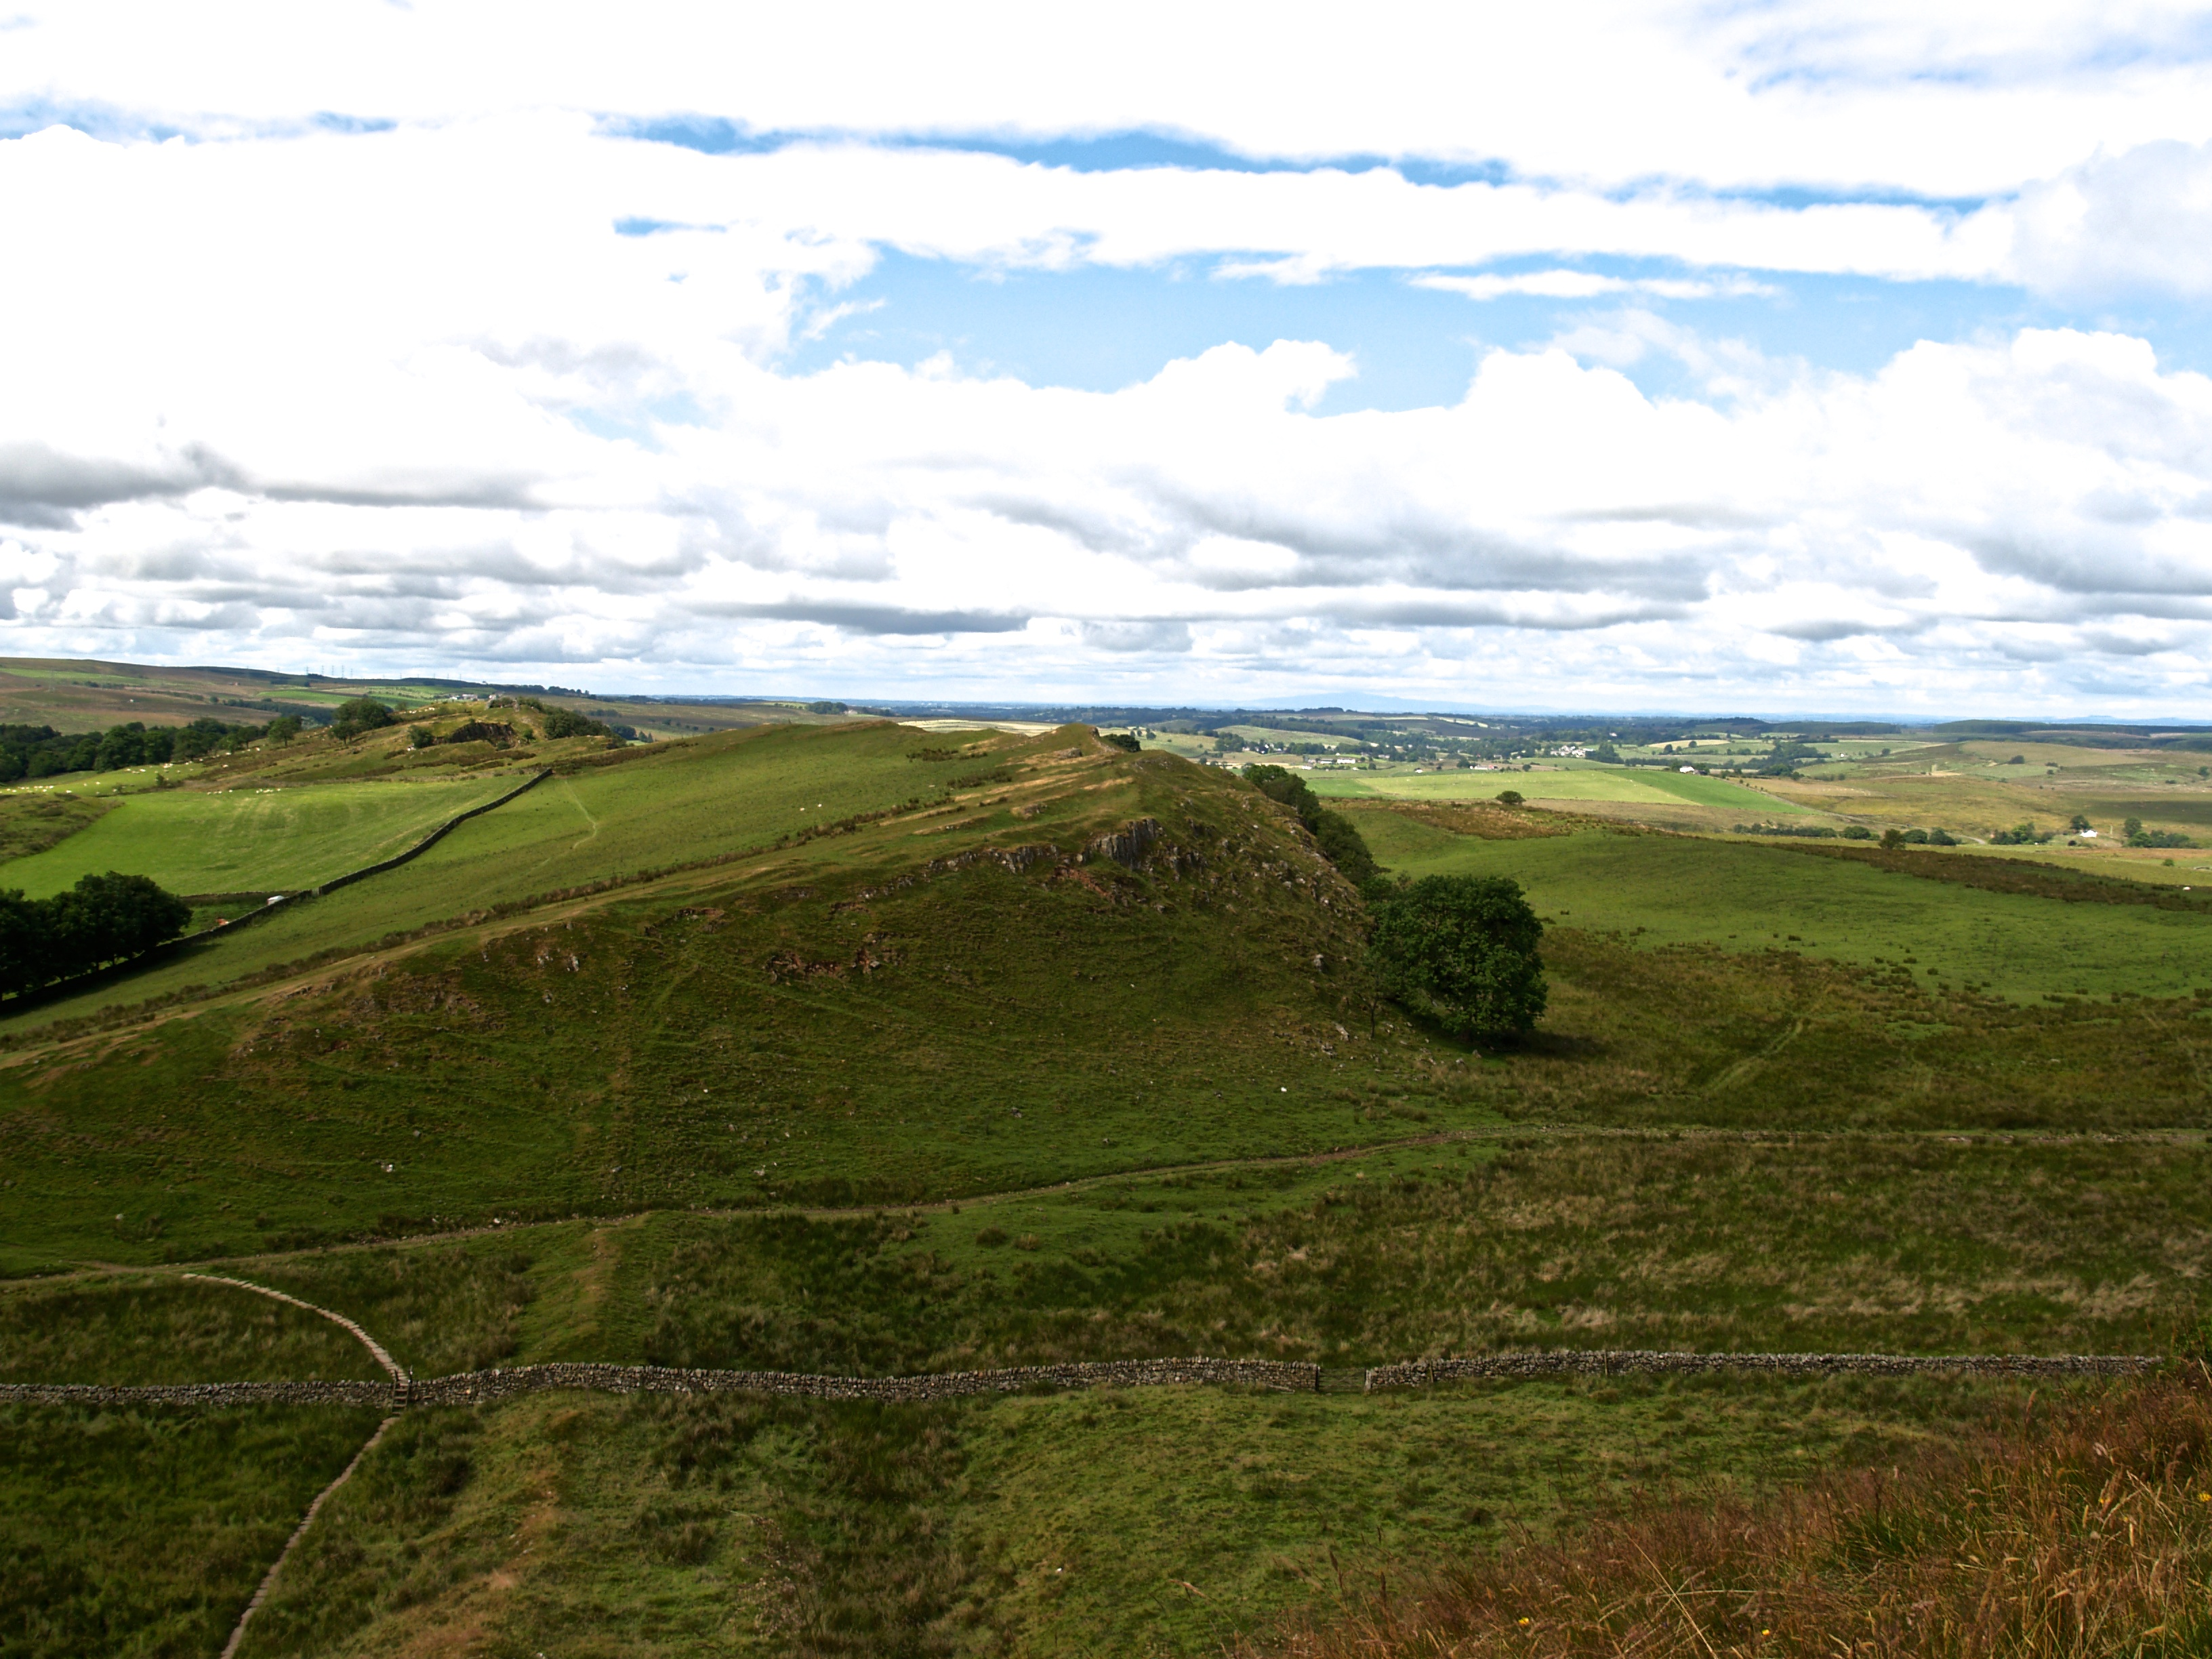 Figure 79 - Stratigraphic geomorphological control (Northumberland National Park, Great britain